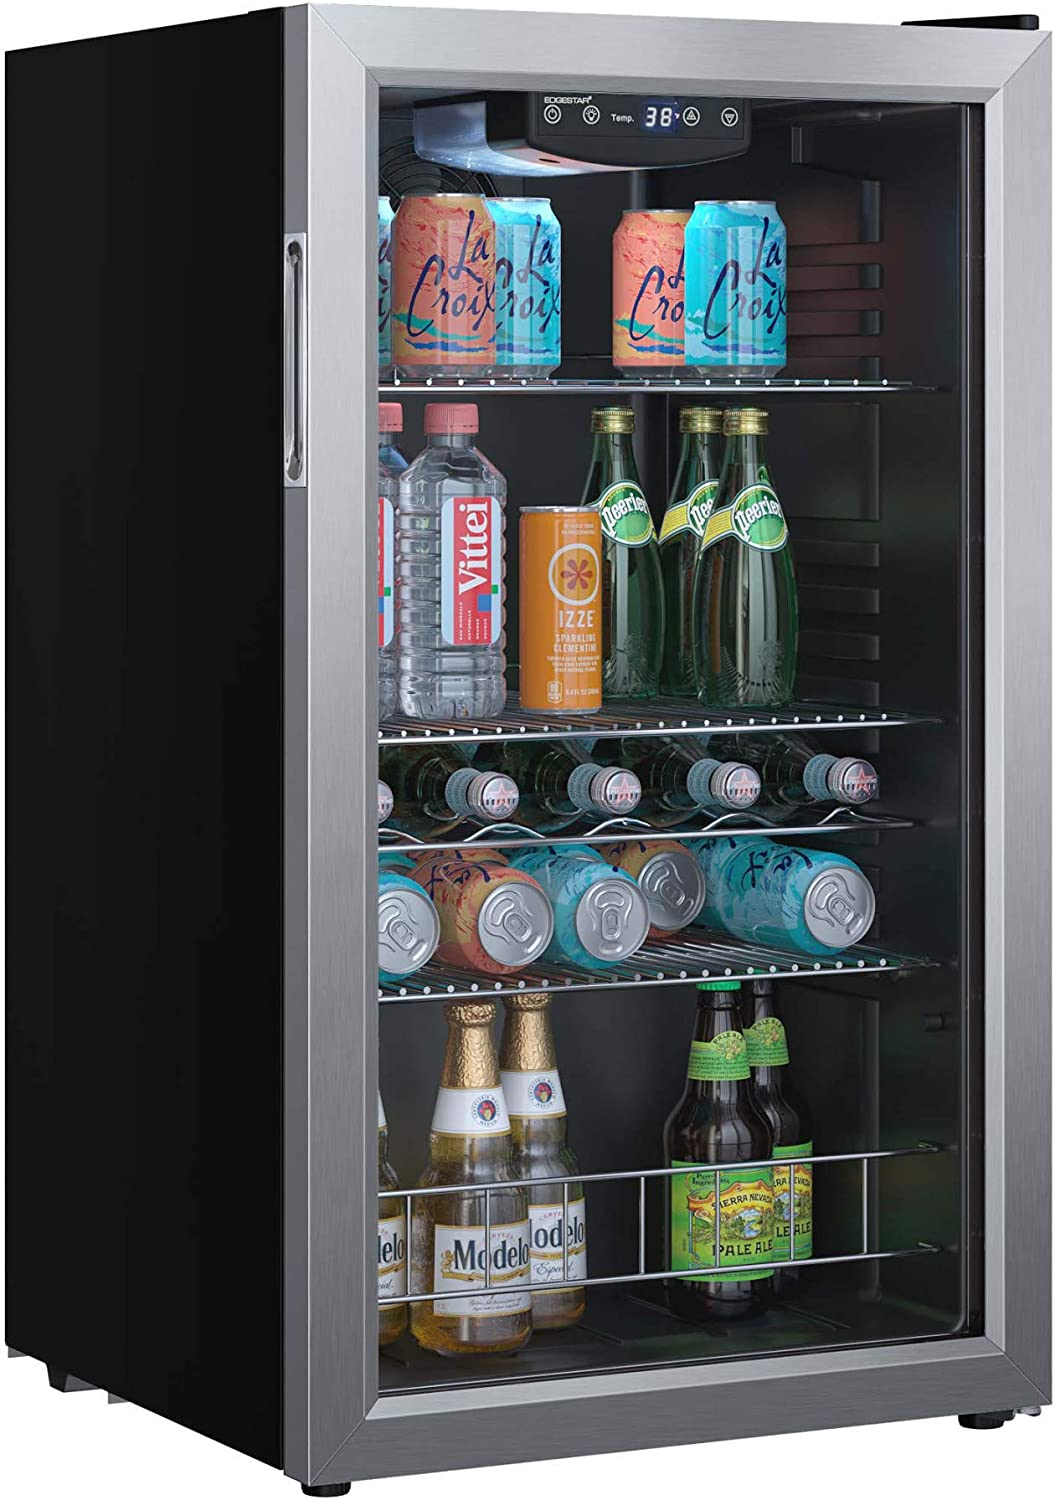 EdgeStar BWC121SS 19 Inch Wide 105 Cool Extreme Inexpensive Can Capacity Bev Selling